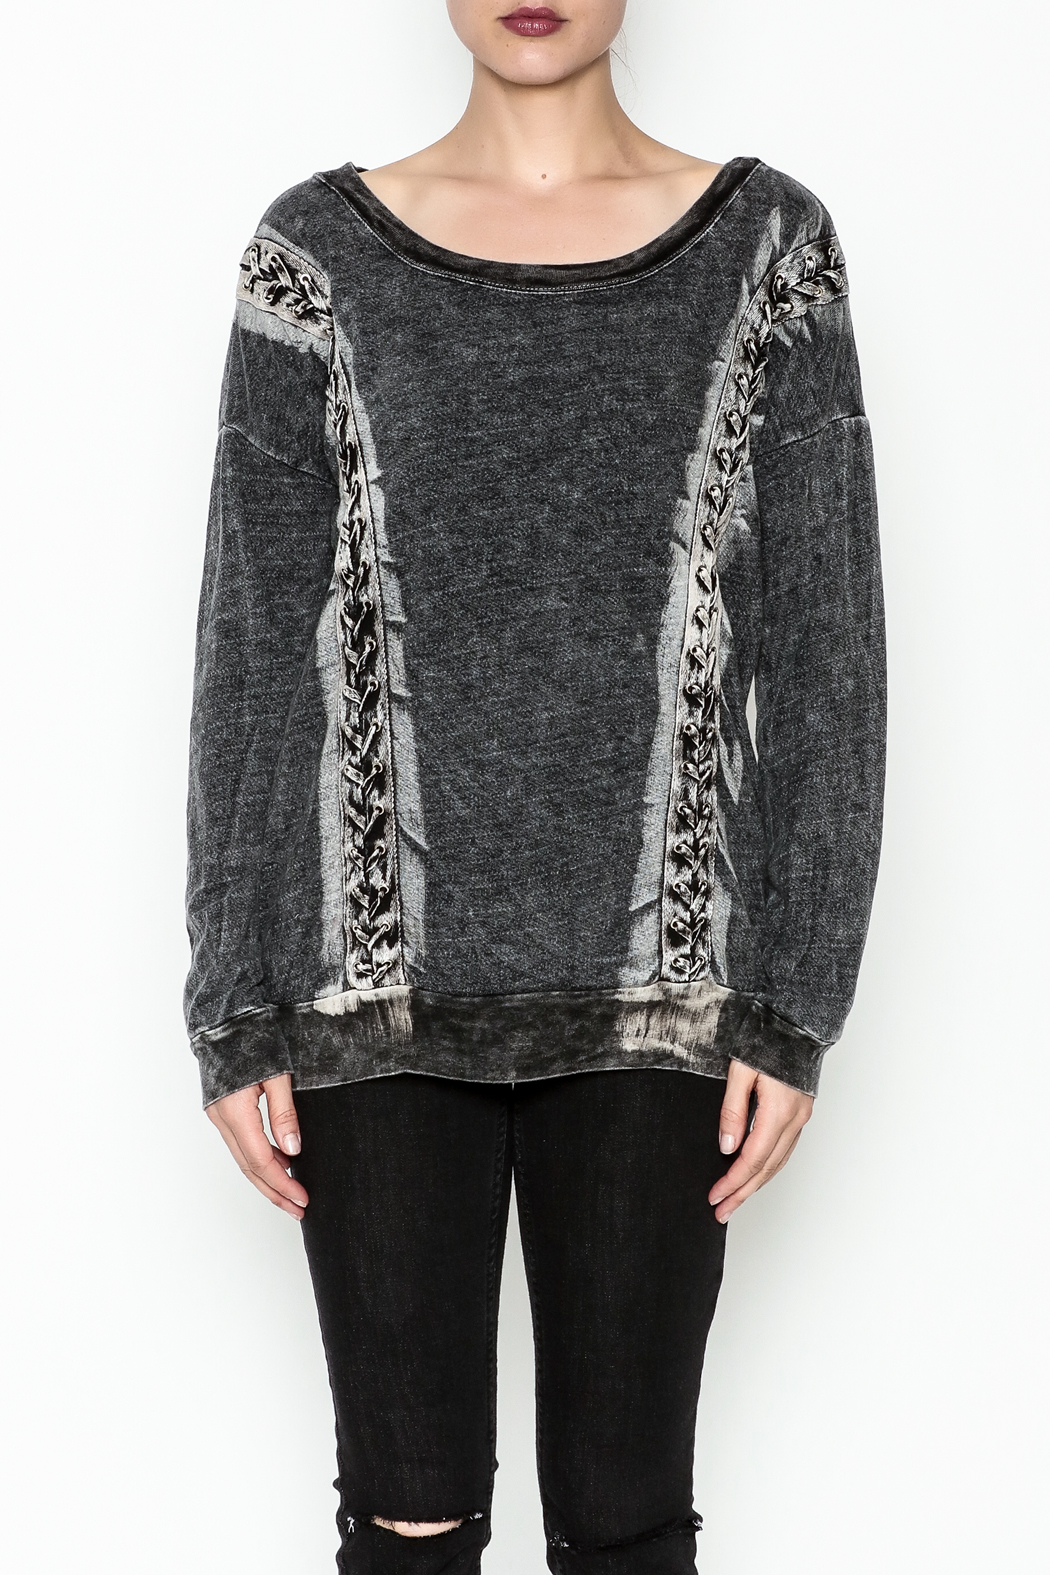 T. Party Mineral Wash Lace Sweatshirt - Main Image